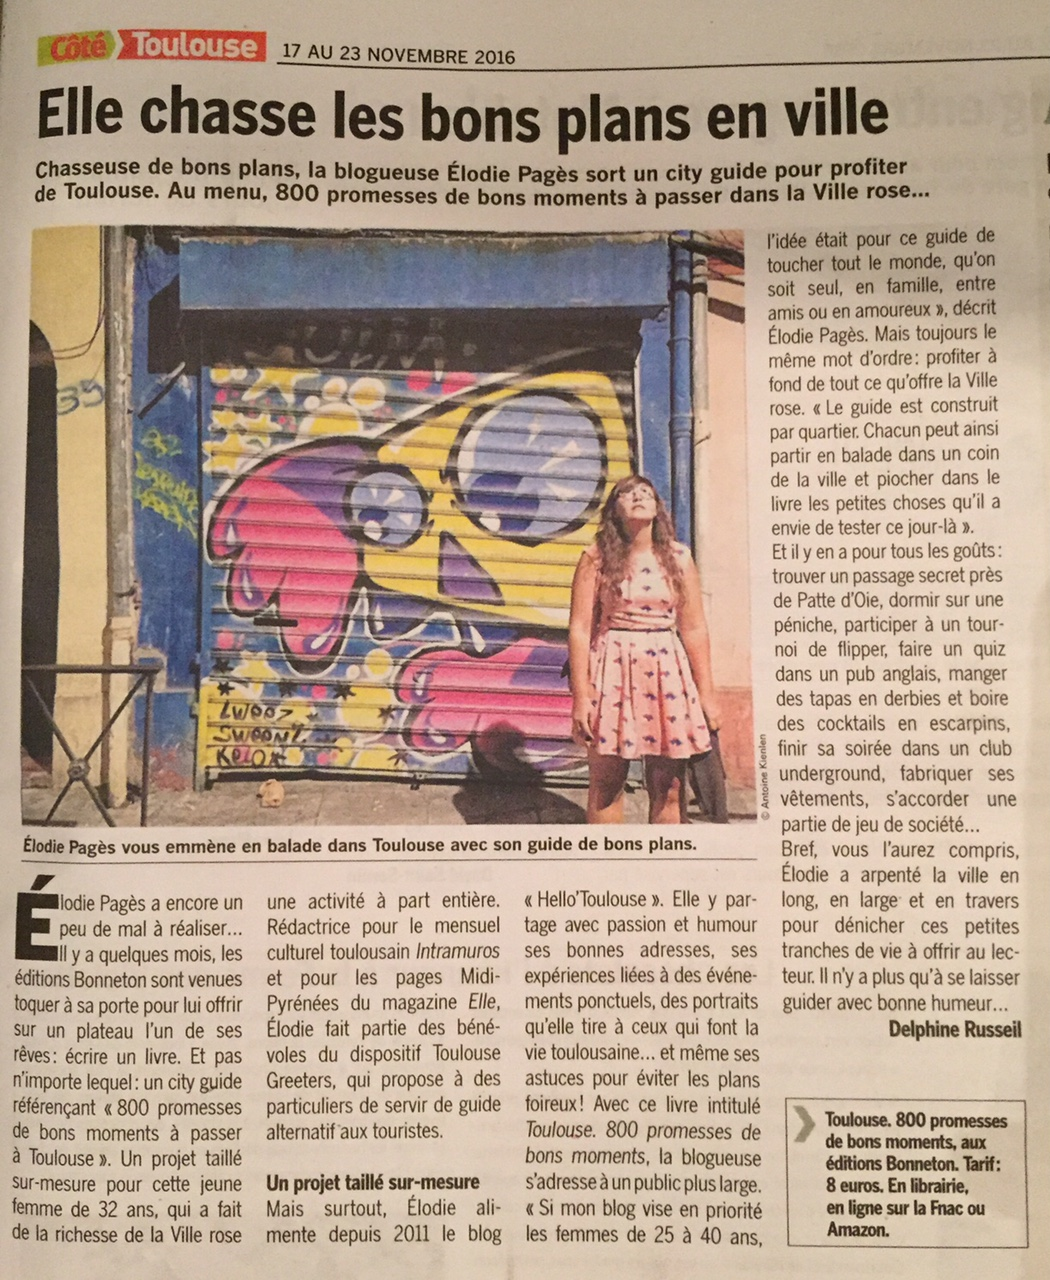 cote-toulouse-article